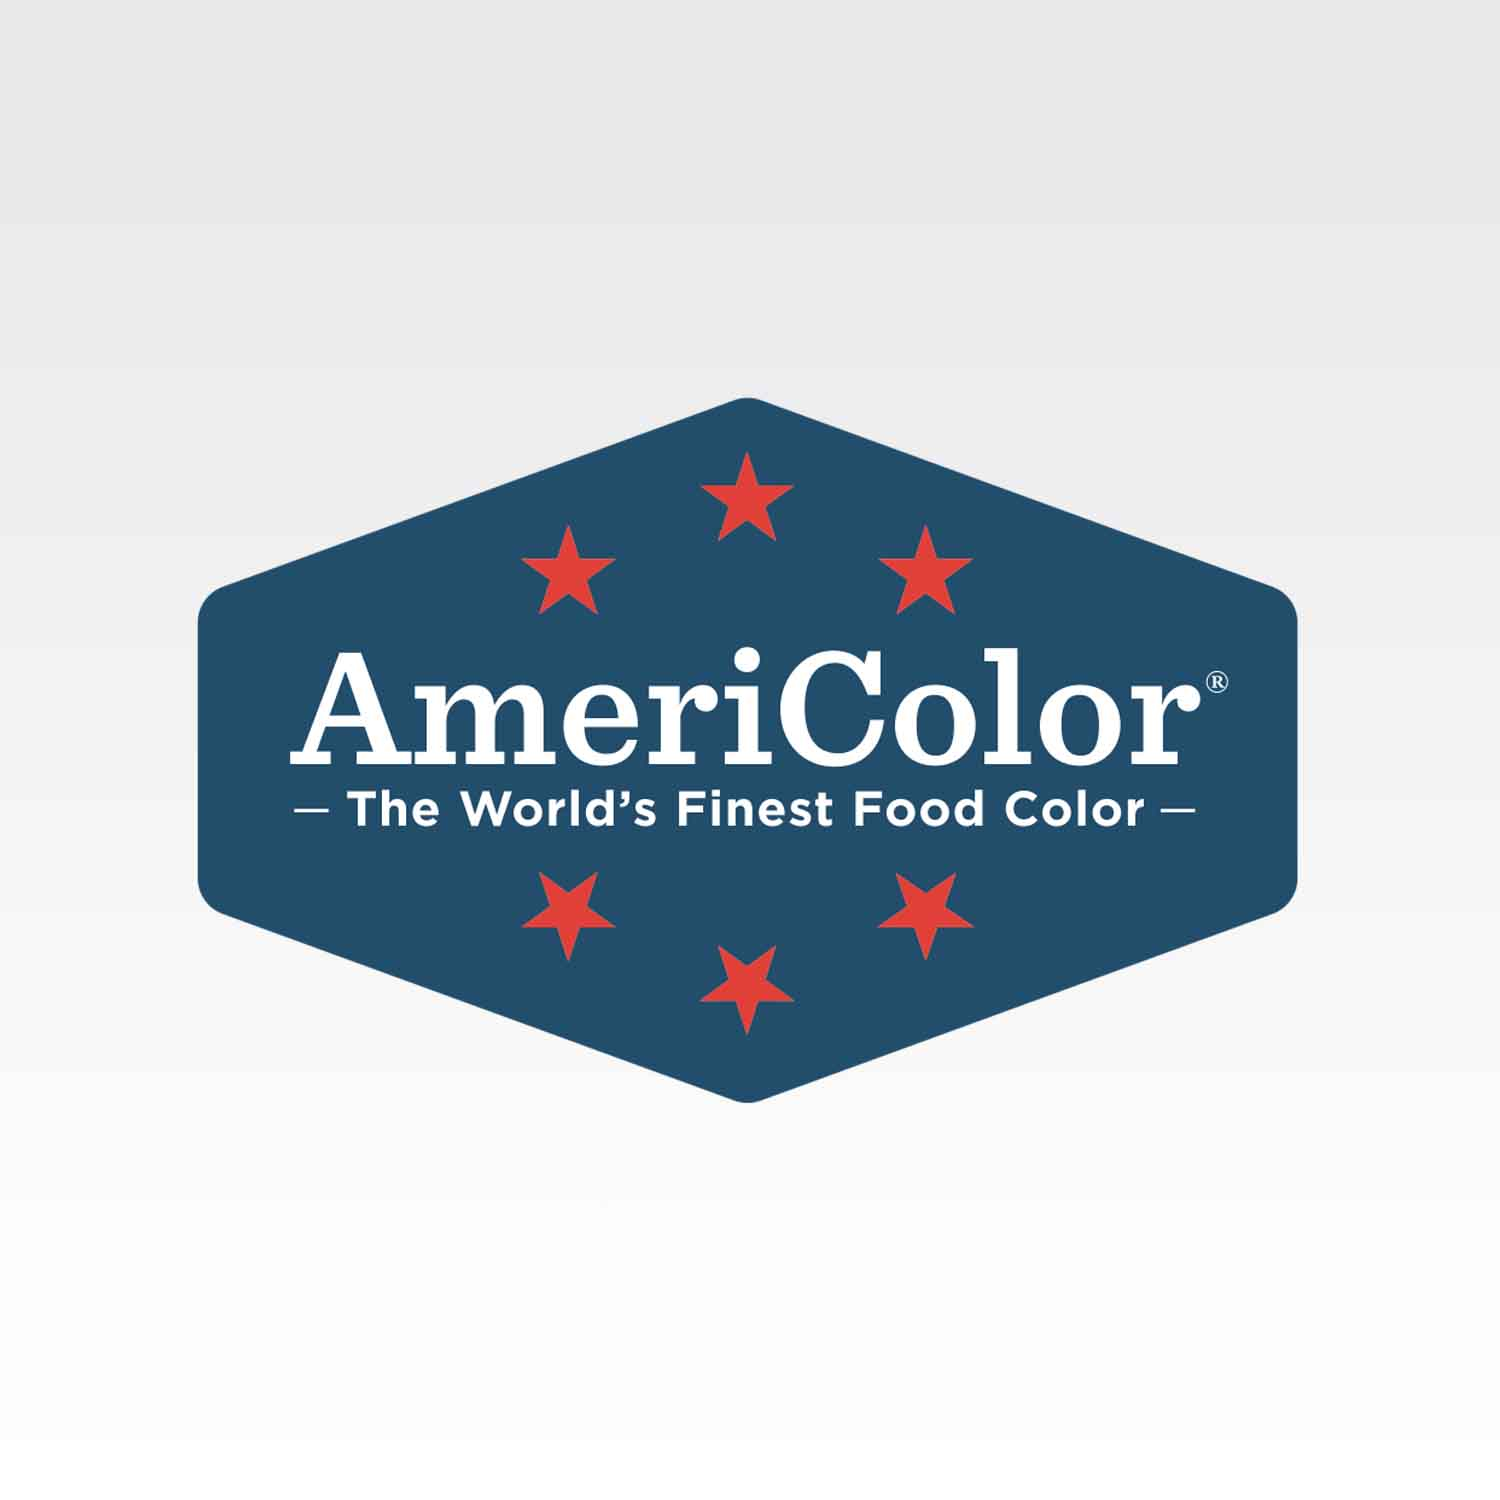 Pearl Sheen Americolor AmeriMist™ Food Color (Old # 34-672)